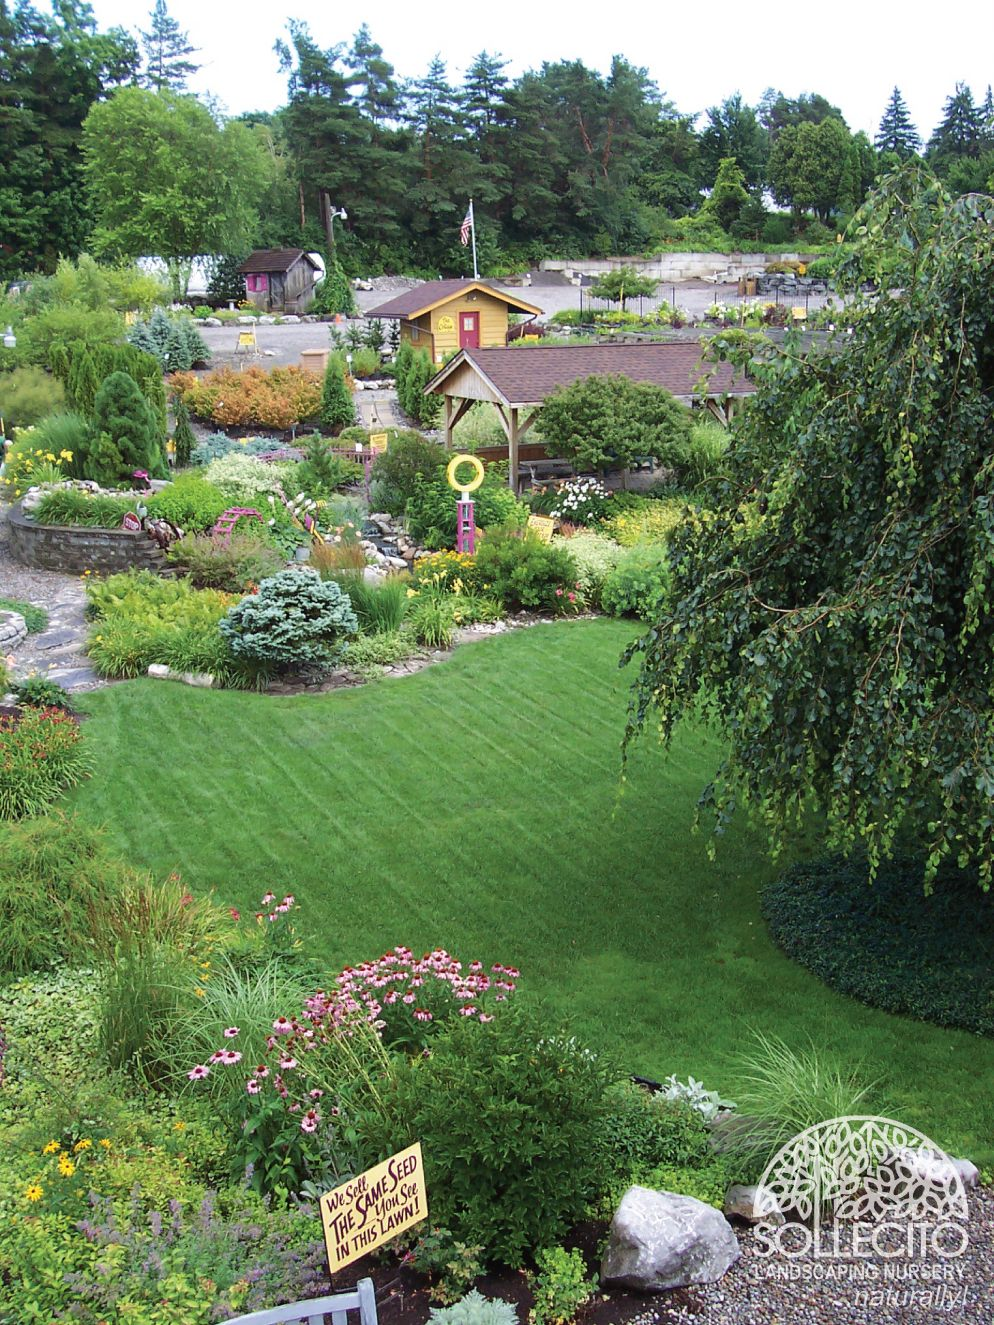 www.Sollecito.com - Landscaping Ideas for your backyard ...